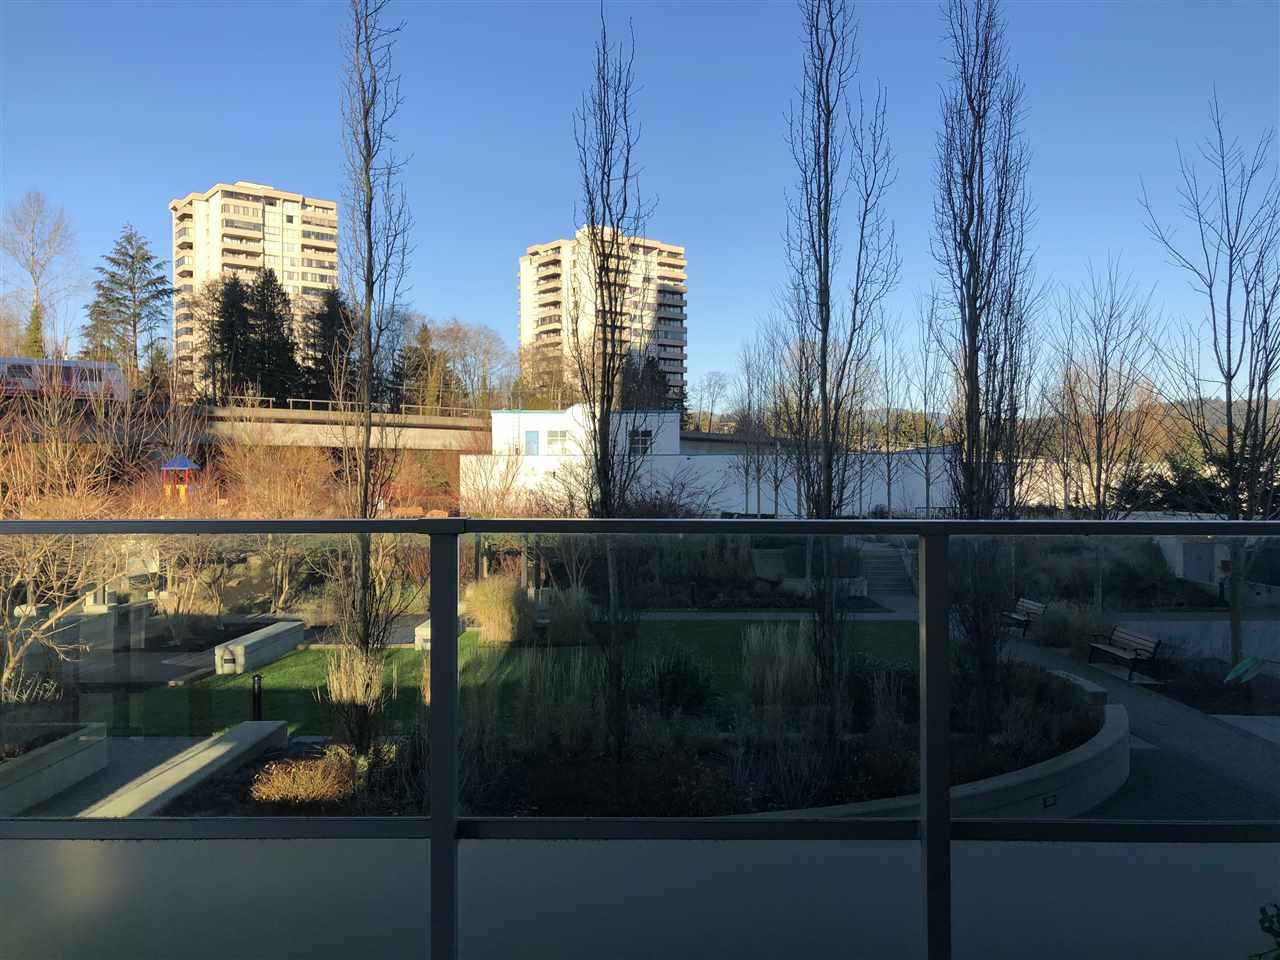 Photo 20: Photos: 405 2232 DOUGLAS ROAD in Burnaby: Brentwood Park Condo for sale (Burnaby North)  : MLS®# R2347040